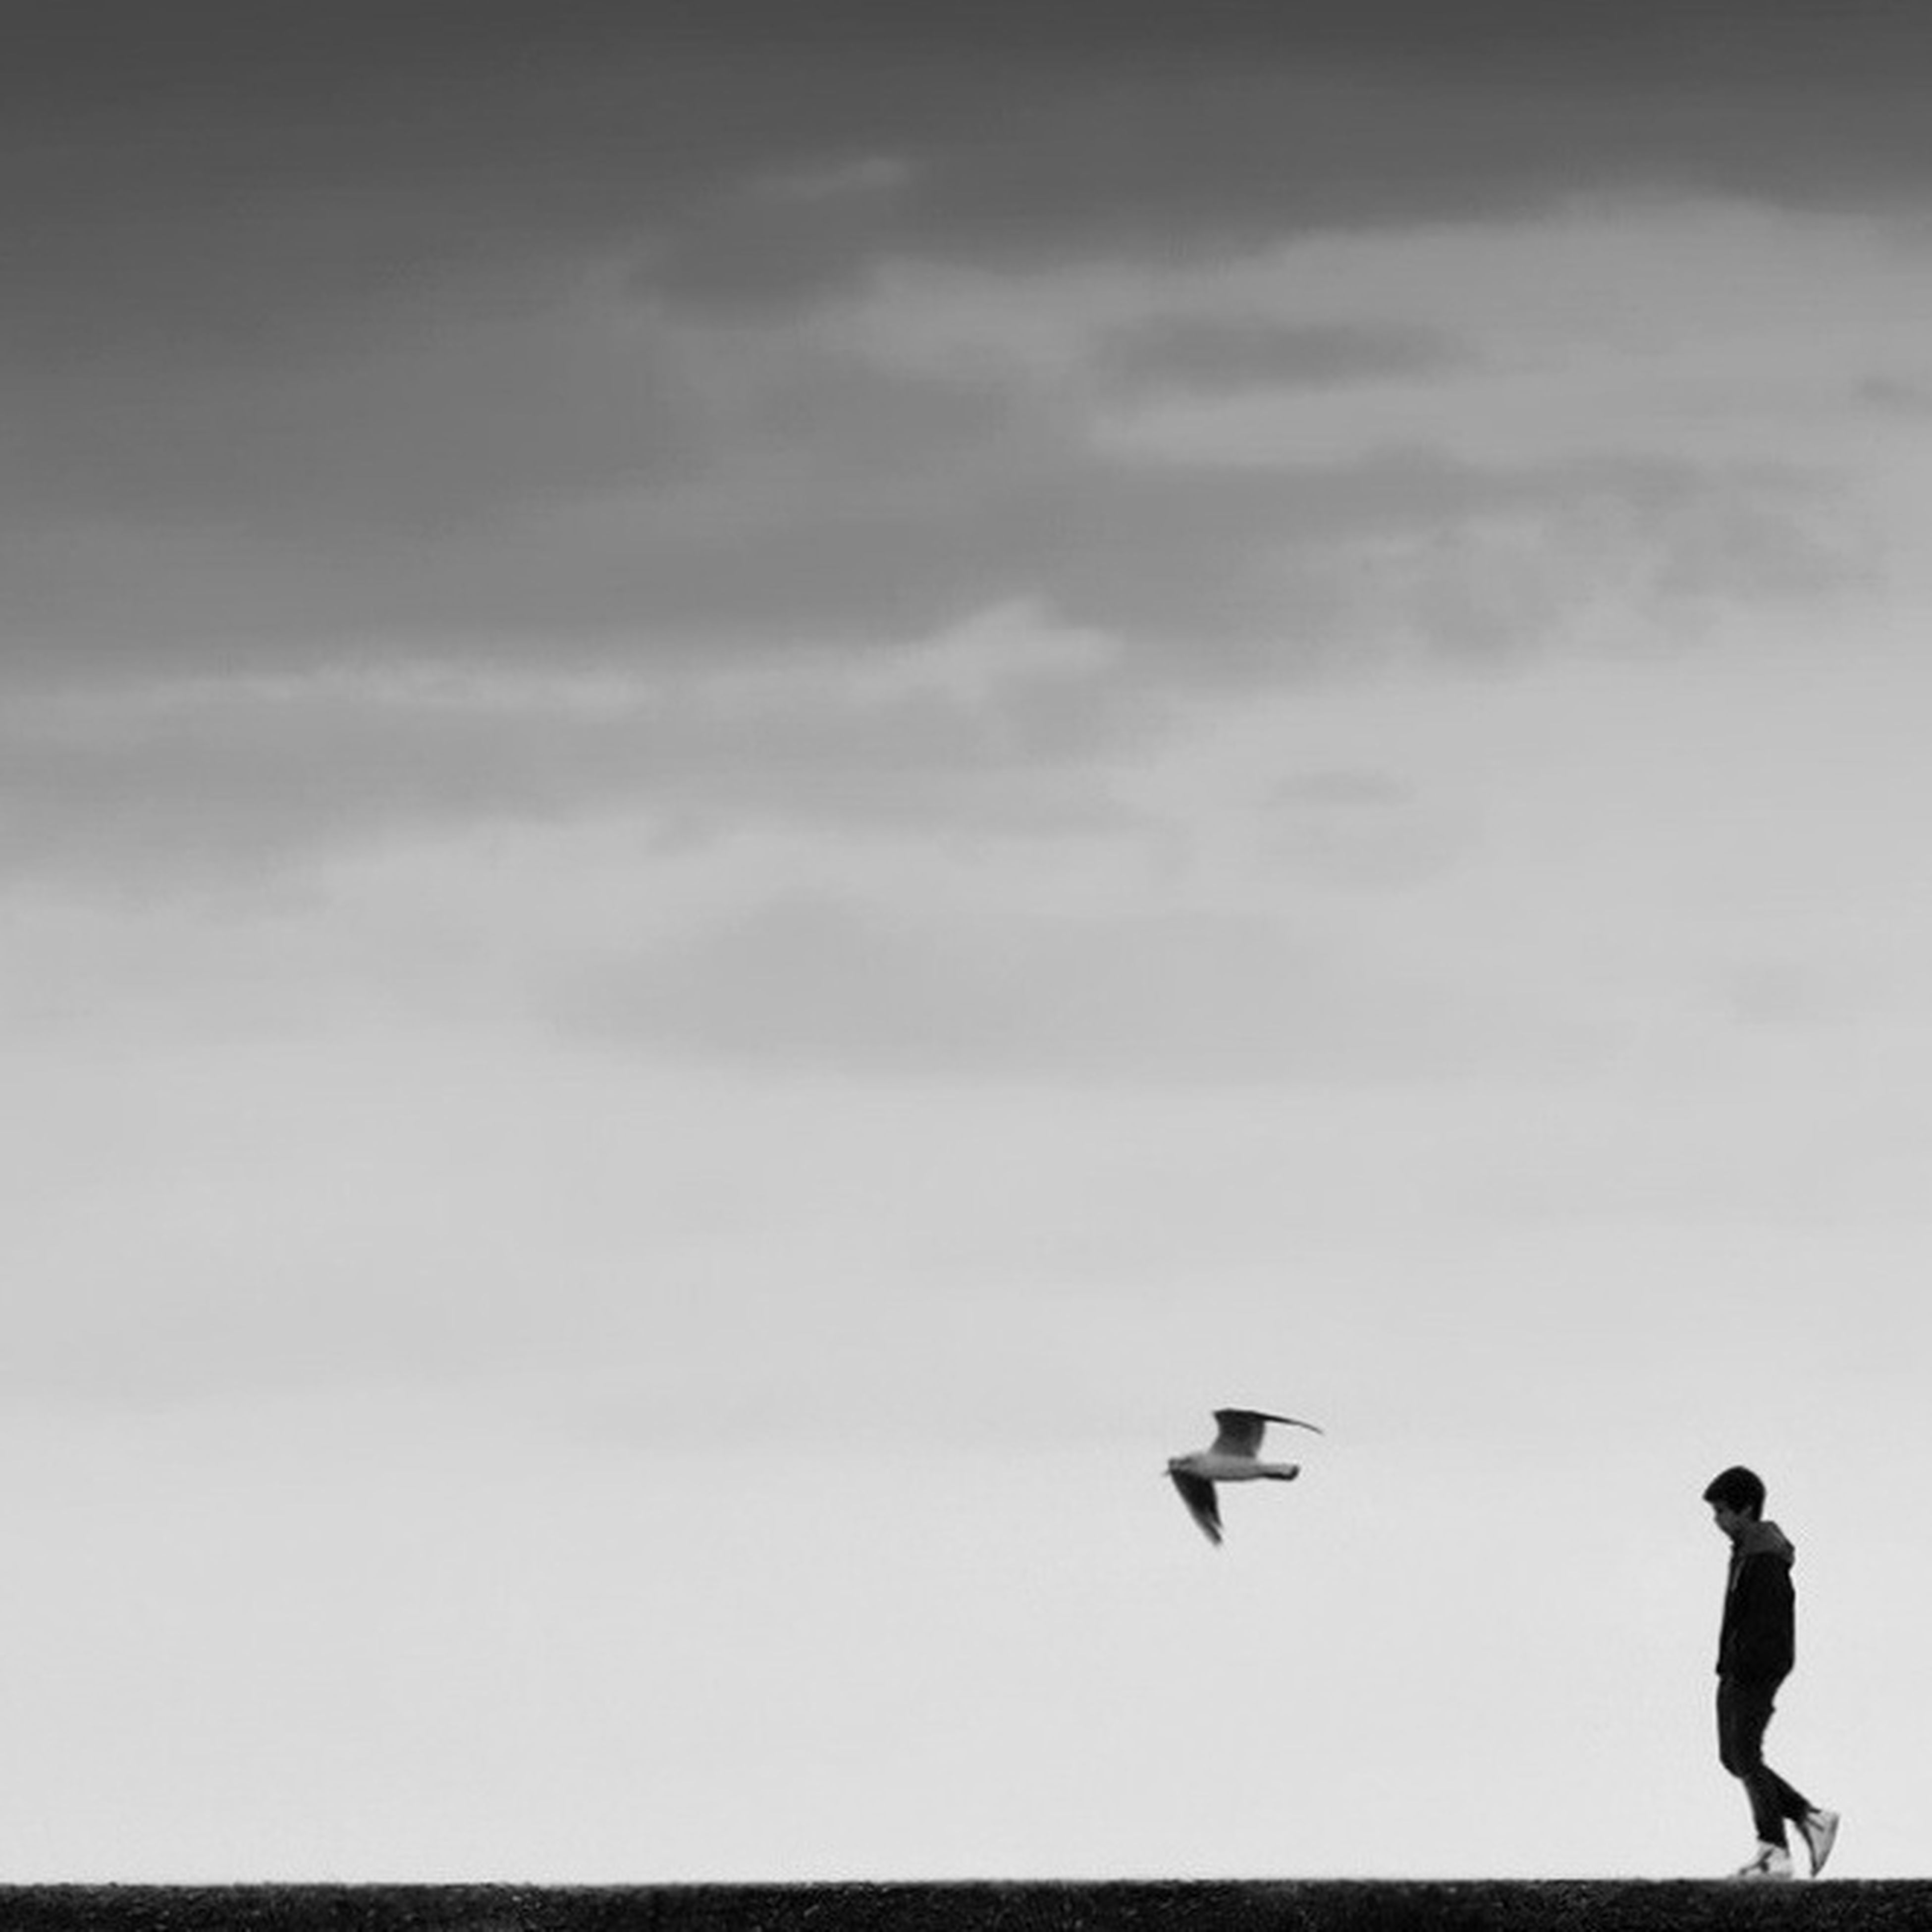 lifestyles, leisure activity, low angle view, sky, men, full length, mid-air, flying, standing, person, cloud - sky, silhouette, outdoors, walking, childhood, fun, day, rear view